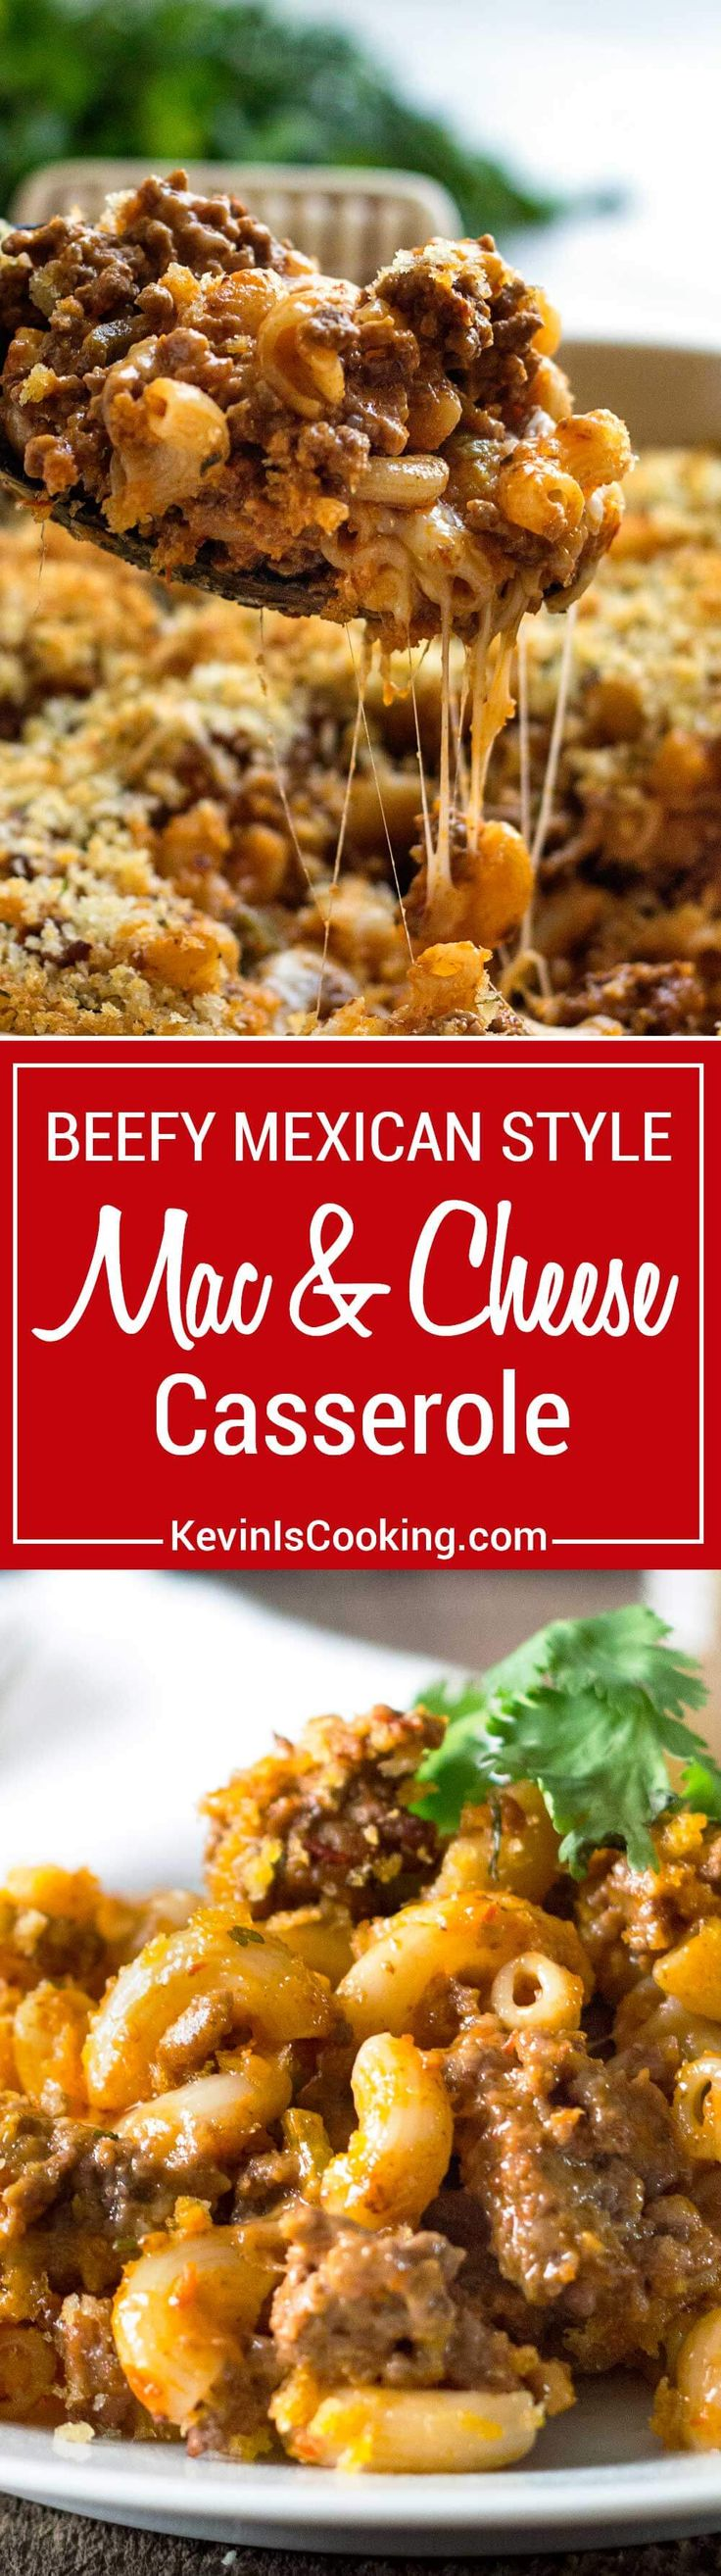 This stepped up Beefy Mac and Cheese Casserole goes a step further with a Mexican salsa addition to ground beef, extra cheese and crunchy breadcrumb topping. Comfort food that always pleases a crowd!